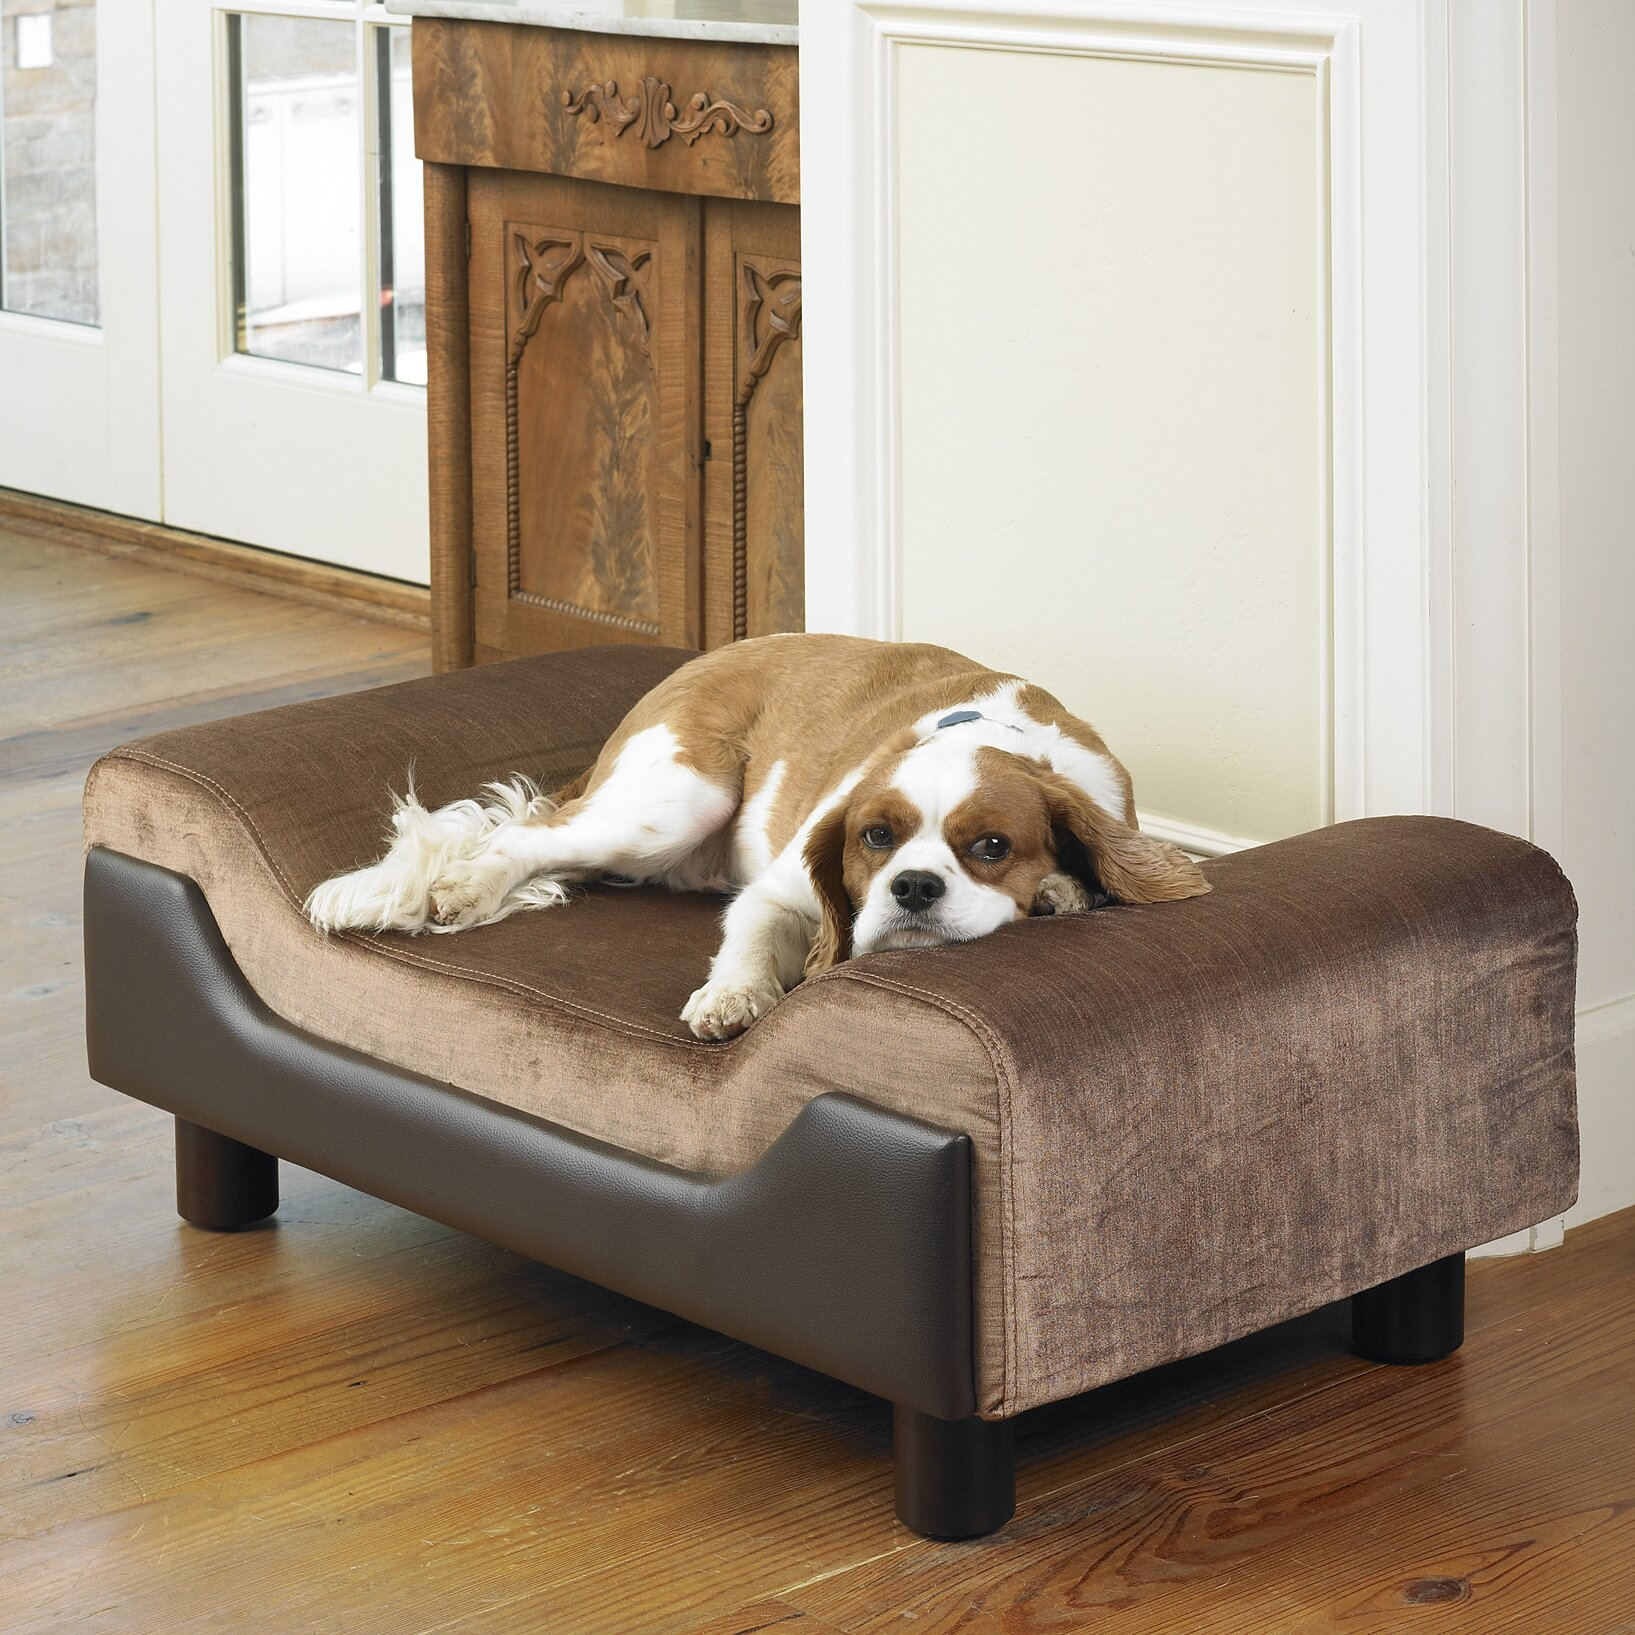 Dog bed furniture Luxury Dog Pet Bed Elevated Contour Medium Size Contemporary Furniture Style Sofa Day Bed Etsy Furniture Style Dog Beds Ideas On Foter